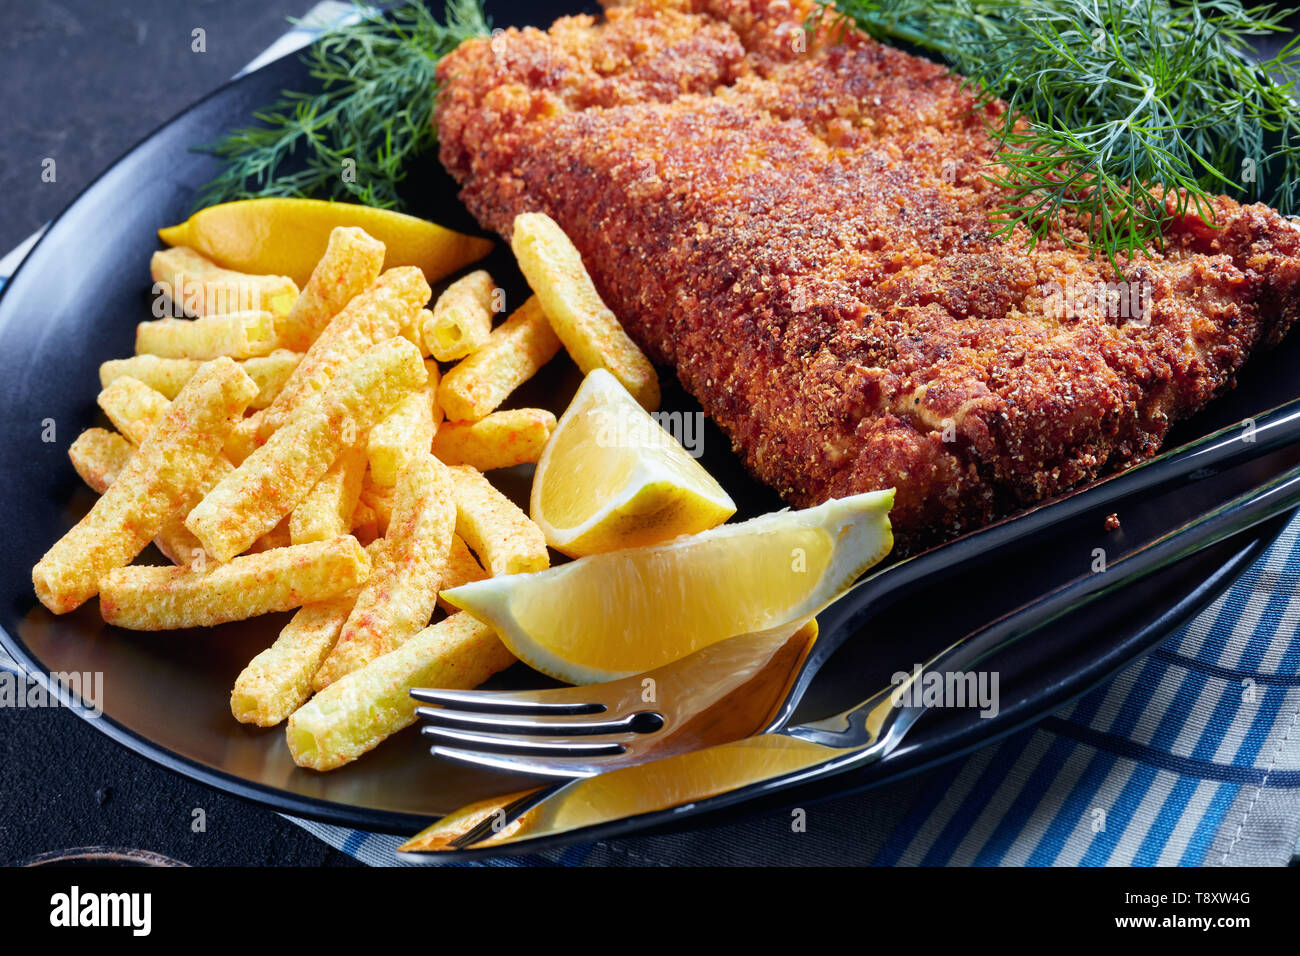 close-up of Breaded hake fillet served with chips, fresh dill and lemon slices on a black plate on a concrete table, top view - Stock Image